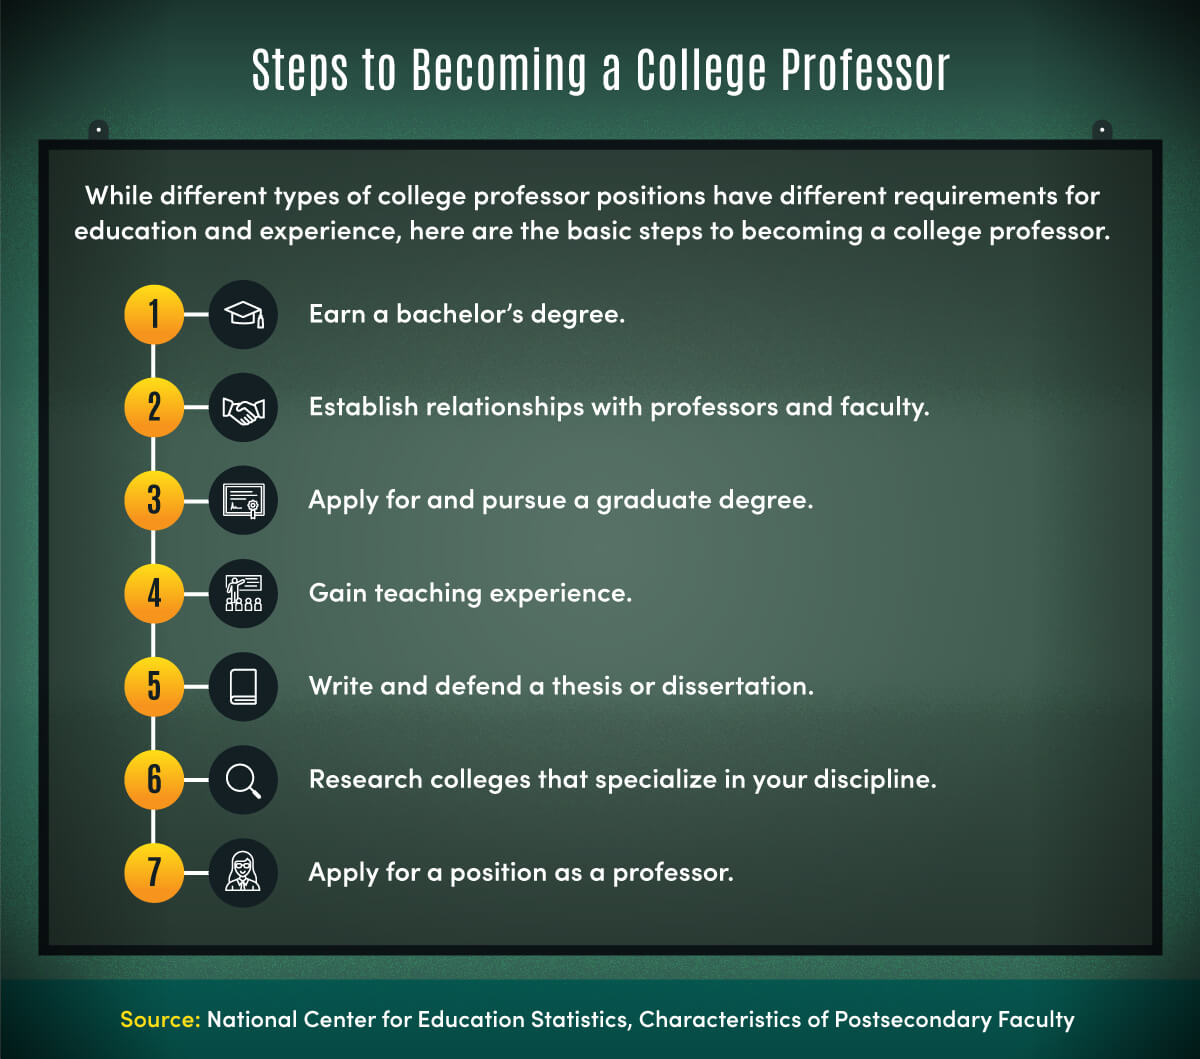 The steps to becoming a professor can require steps such as a bachelor's degree, gaining experience, and writing a thesis.